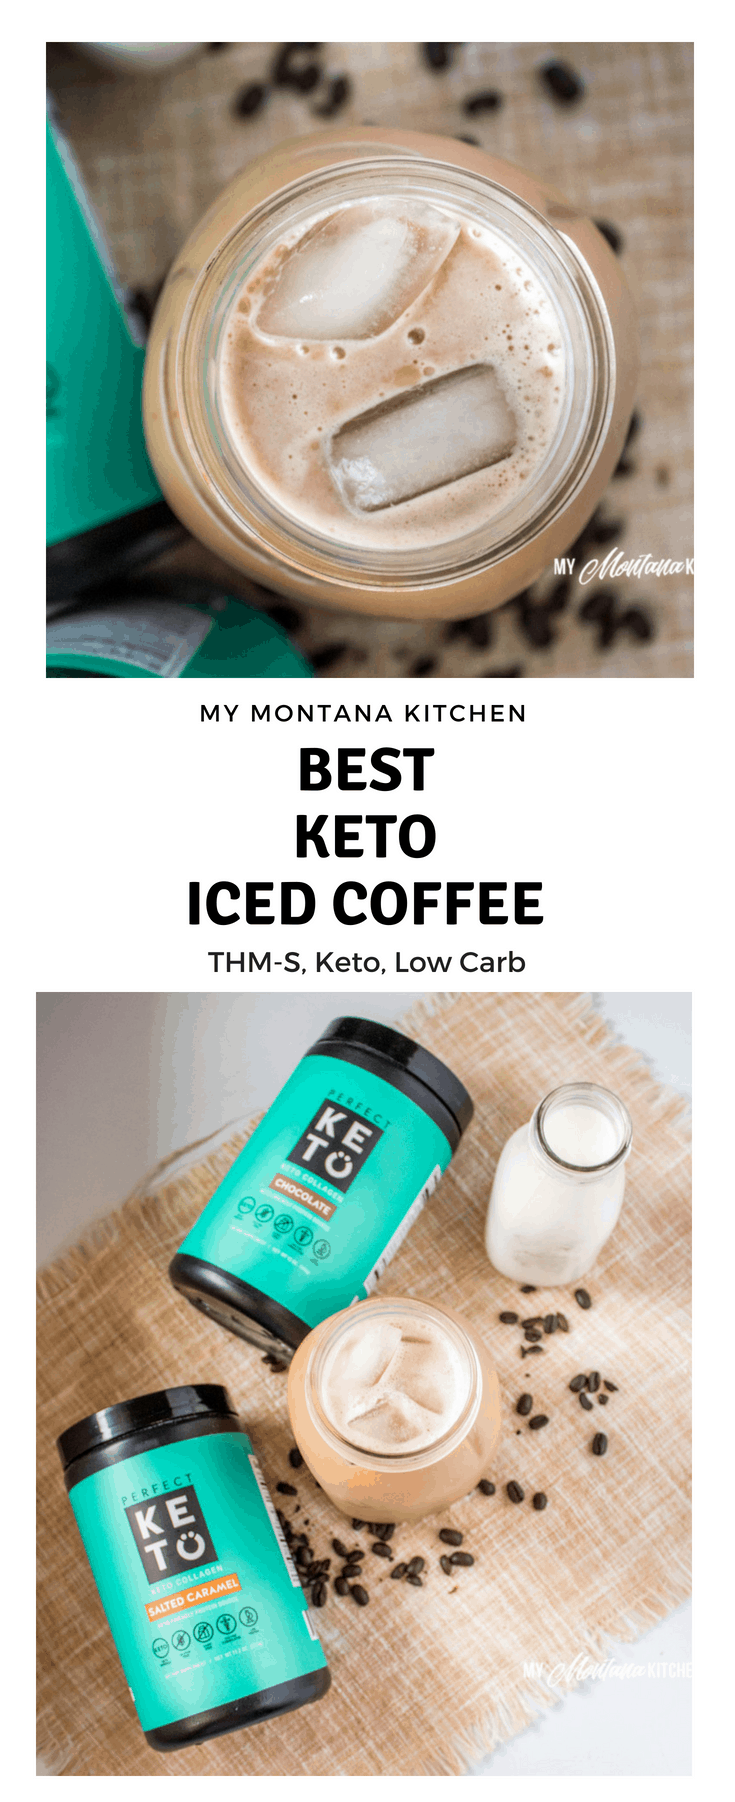 This is the best keto iced coffee recipe - filled with healthy fats and protein, it will keep you satisfied. This is the perfect low carb coffee drink for hot weather. #keto #lowcarb #perfectketo #collagen #mct #protein #icedcoffee #howtomakeicedcoffee #besticedcoffee #trimhealthymama #mymontanakitchen